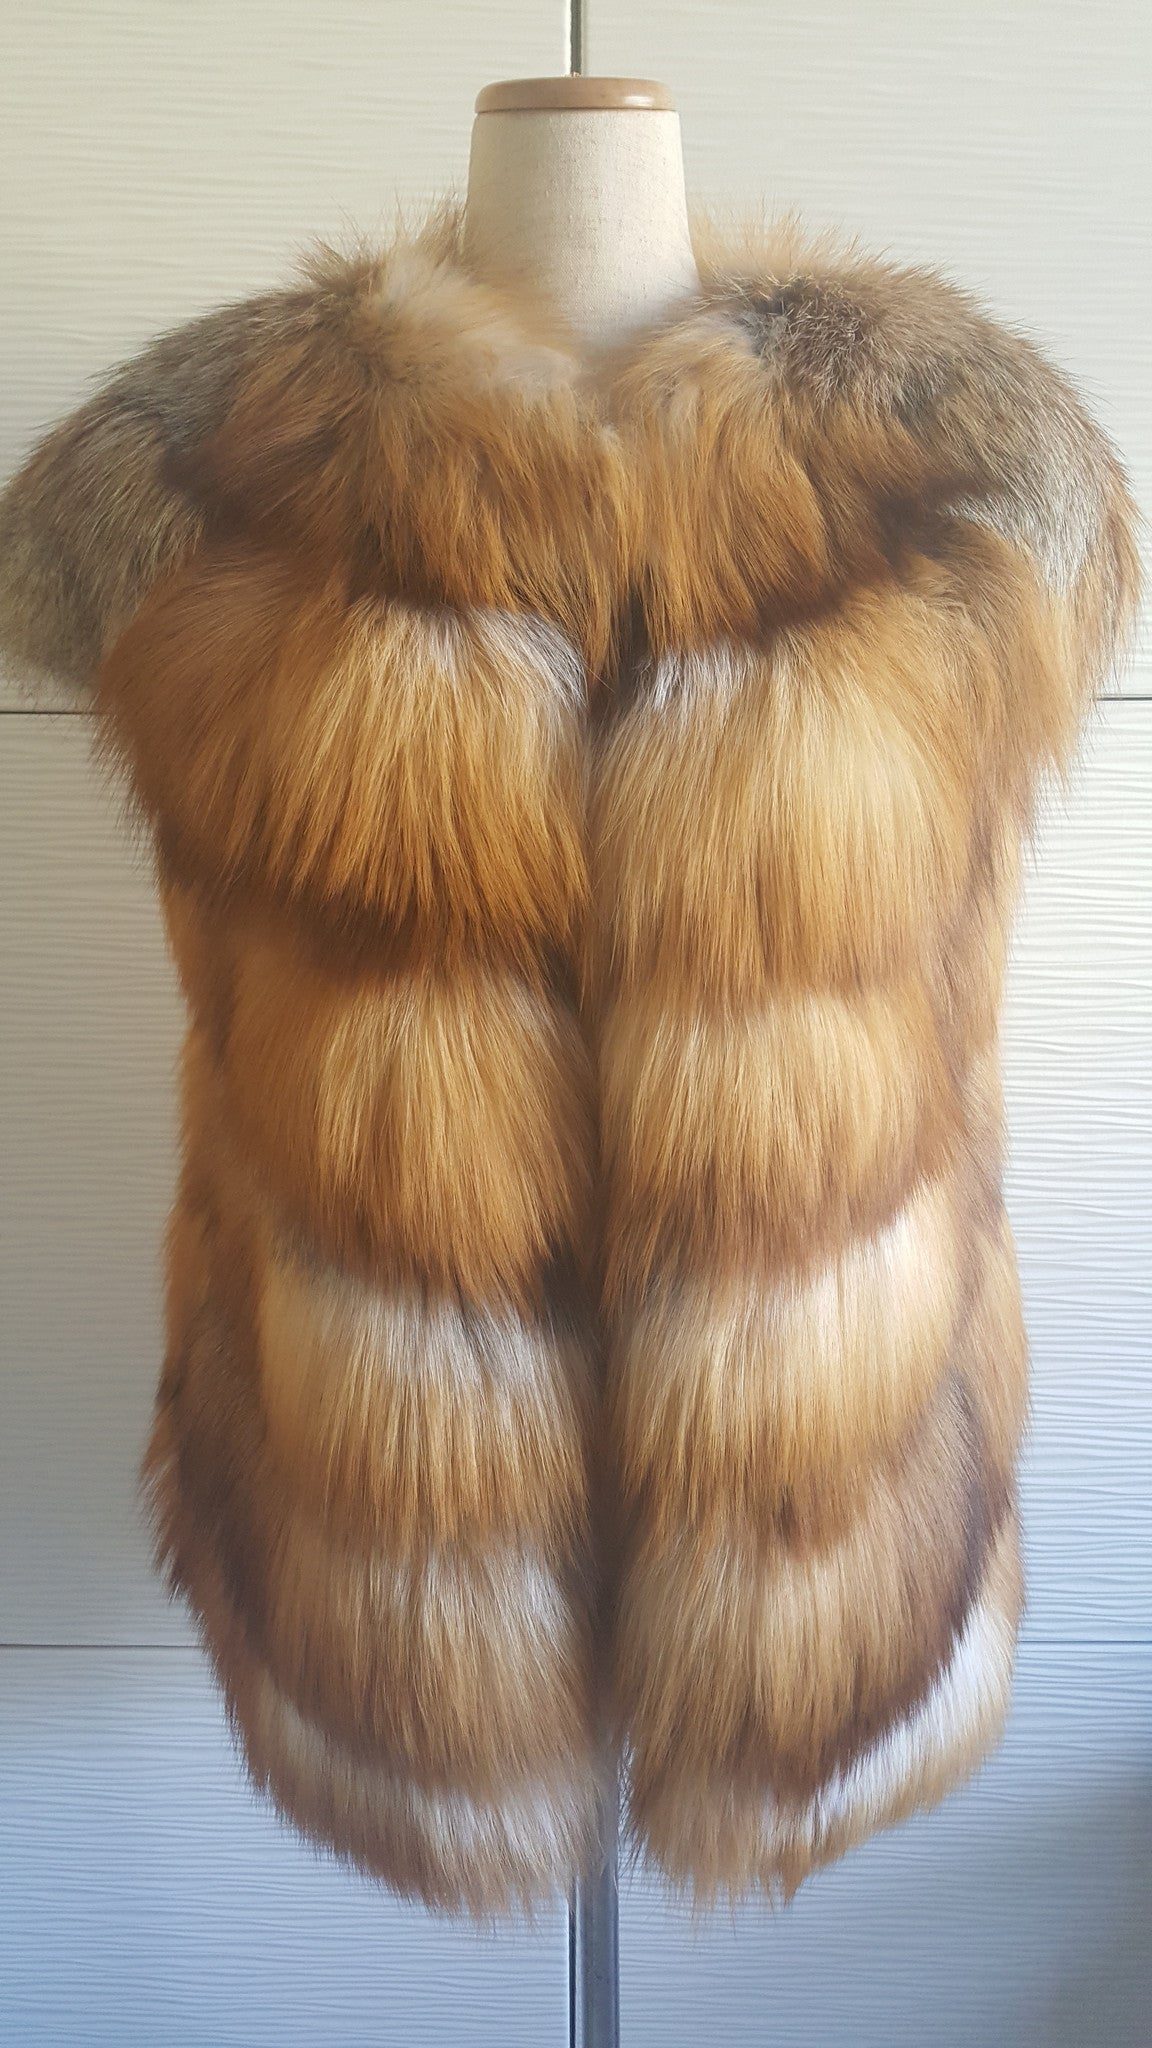 JIGUEREN FUR VEST - SMALL